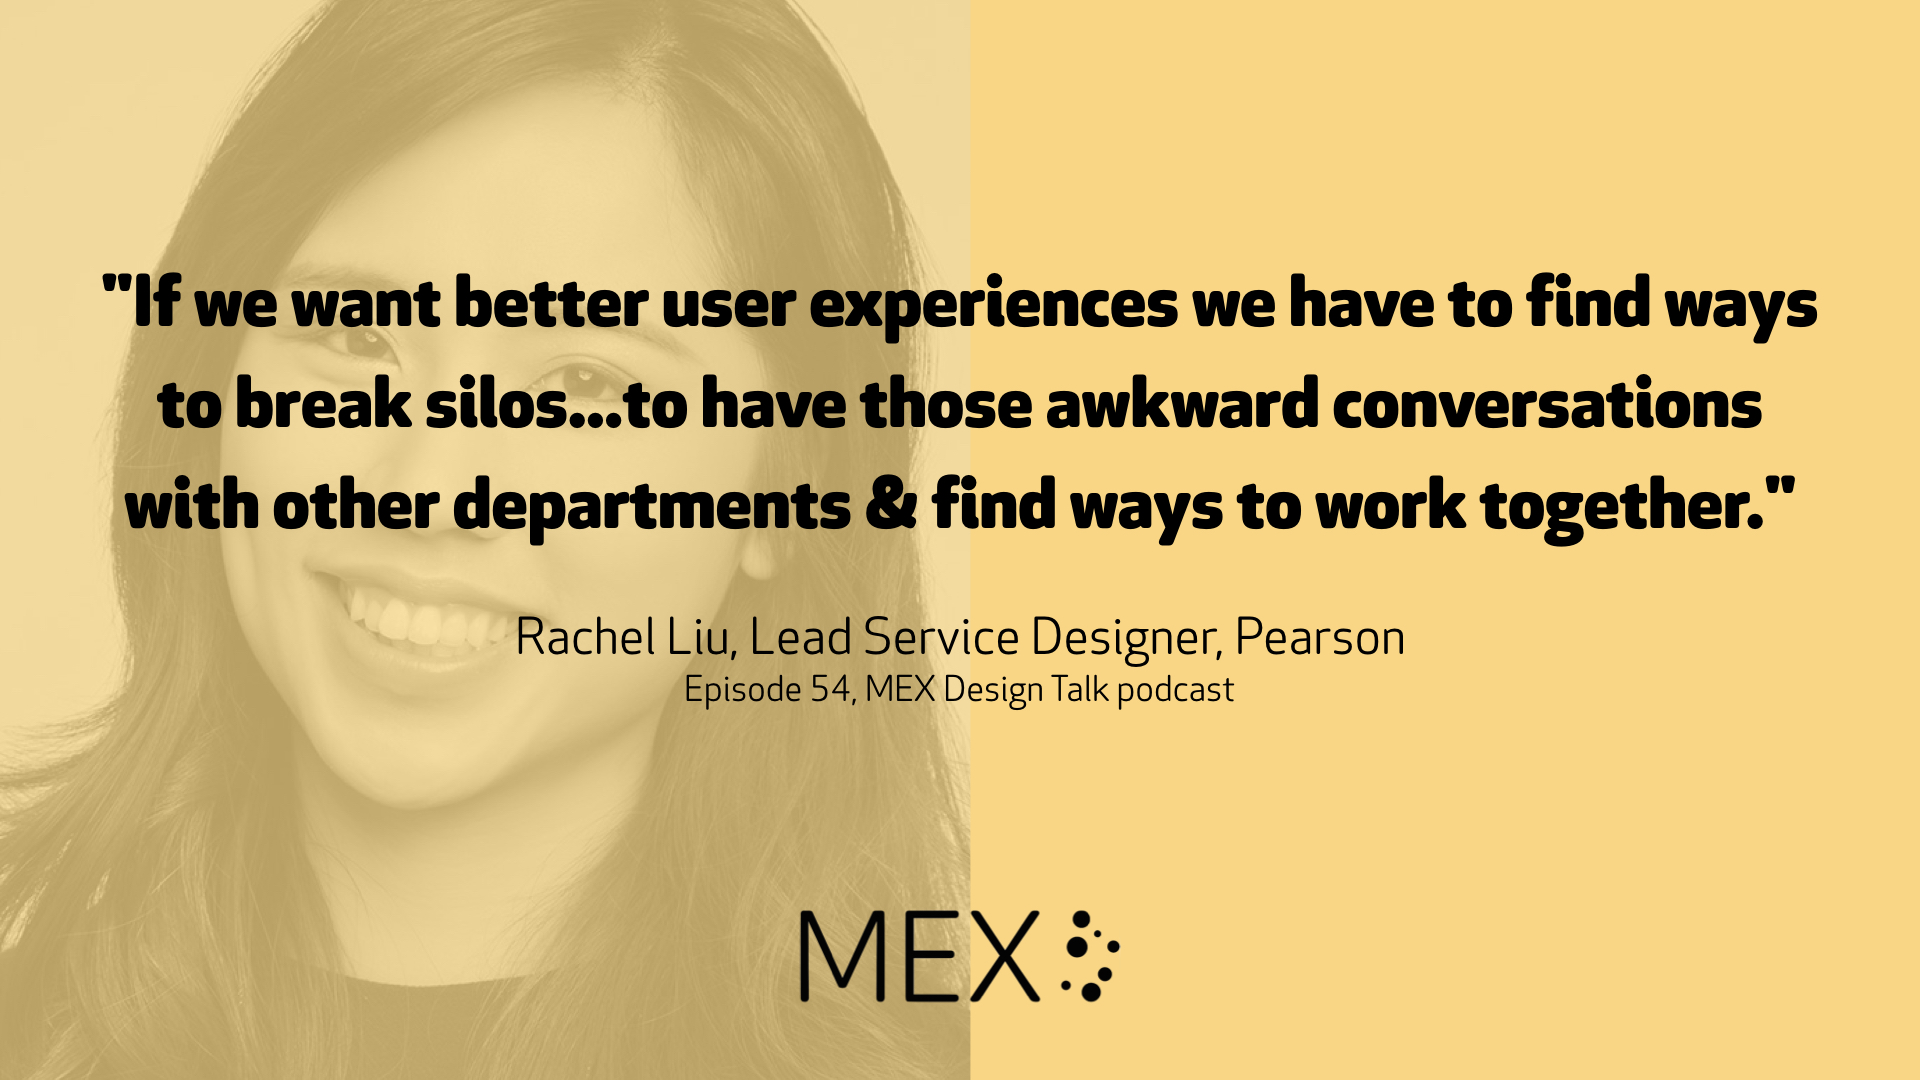 """If we want better user experiences we have to find ways to break silos...to have those awkward conversations with other departments & find ways to work together."" Rachel Liu, Lead Service Designer, Pearson Episode 54, MEX Design Talk podcast"